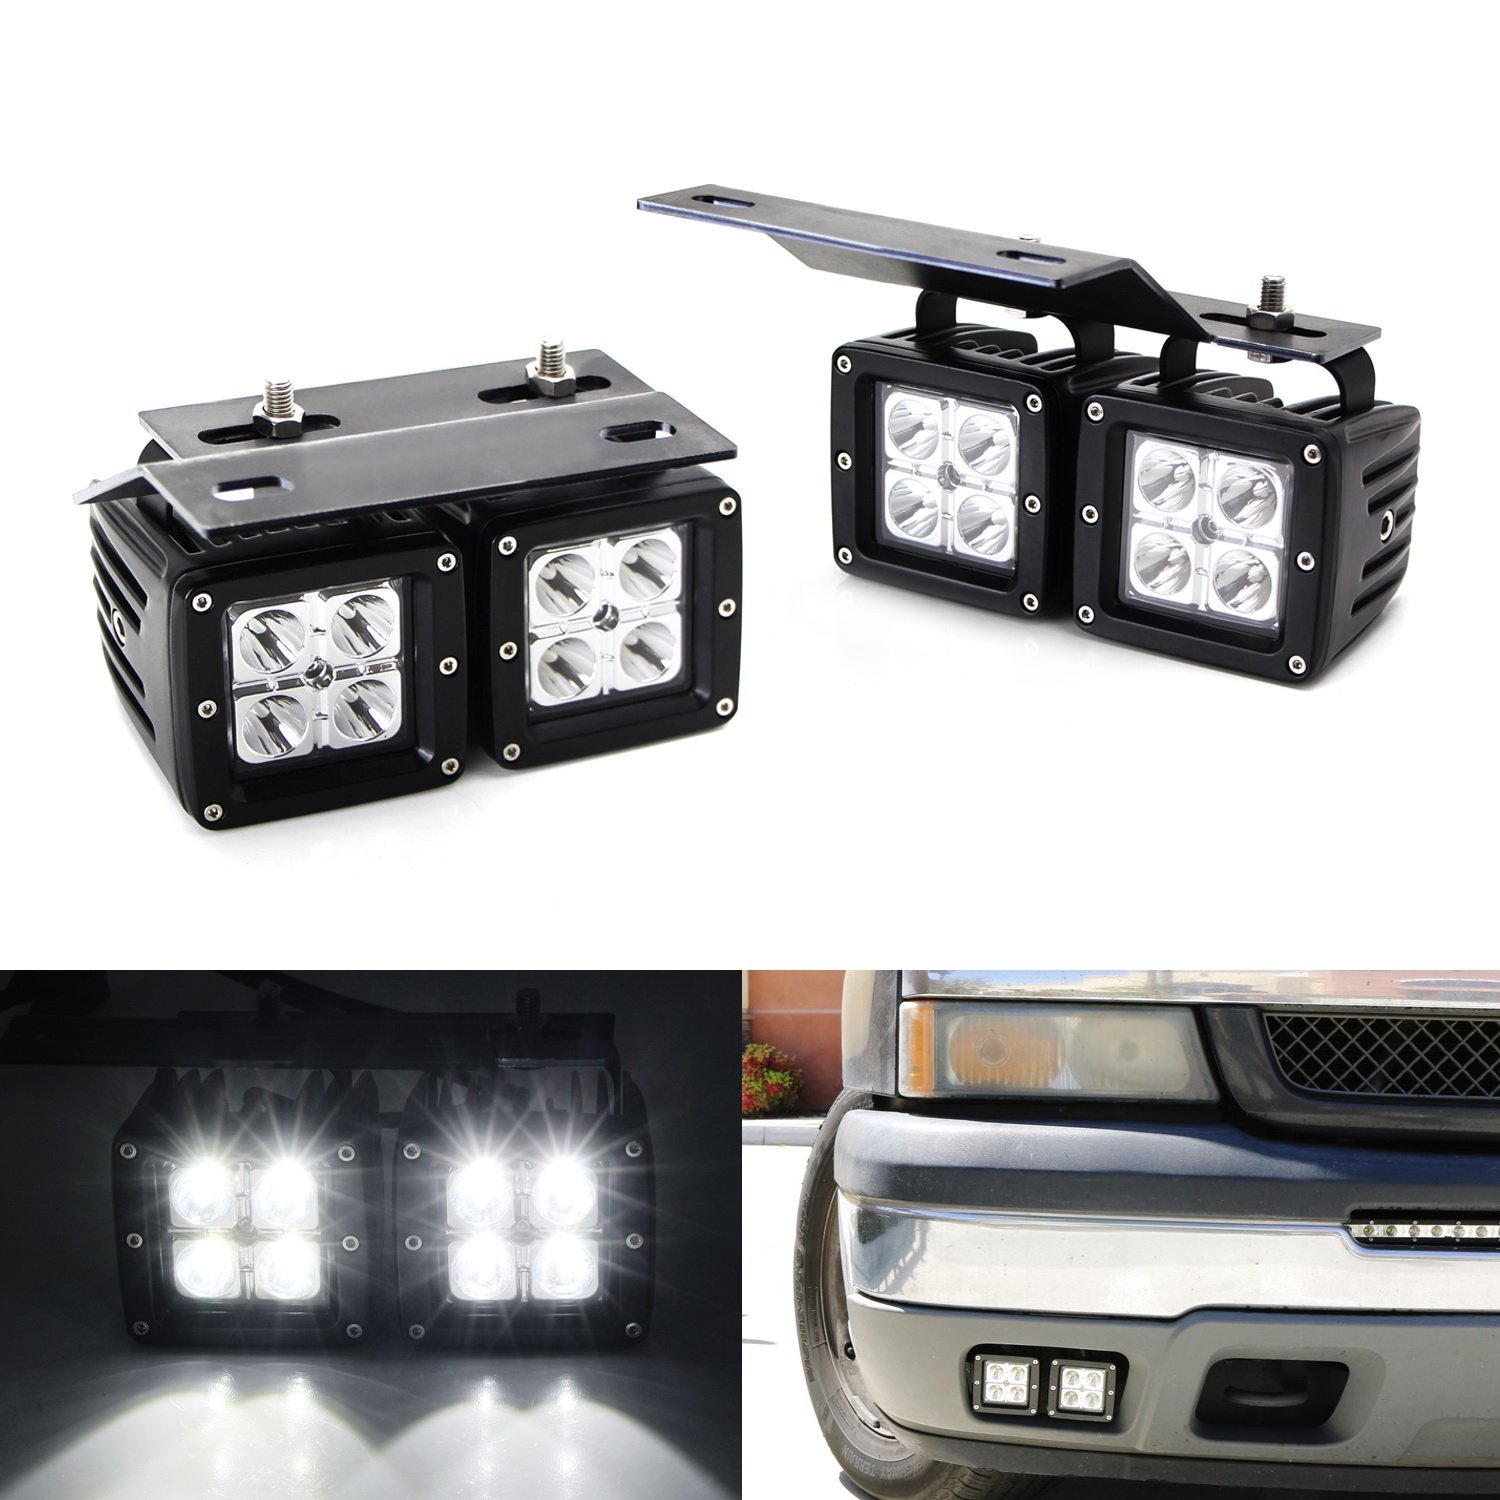 Buy Ijdmtoy Complete Set Fog Lights Foglamp Kit With H11 Bulbs Amp 2015 Chevy Silverado Light W Location Mounting Brackets Wiring Adapters For 2002 06 Chevrolet Avalanche 2003 1500 07 2500 3500